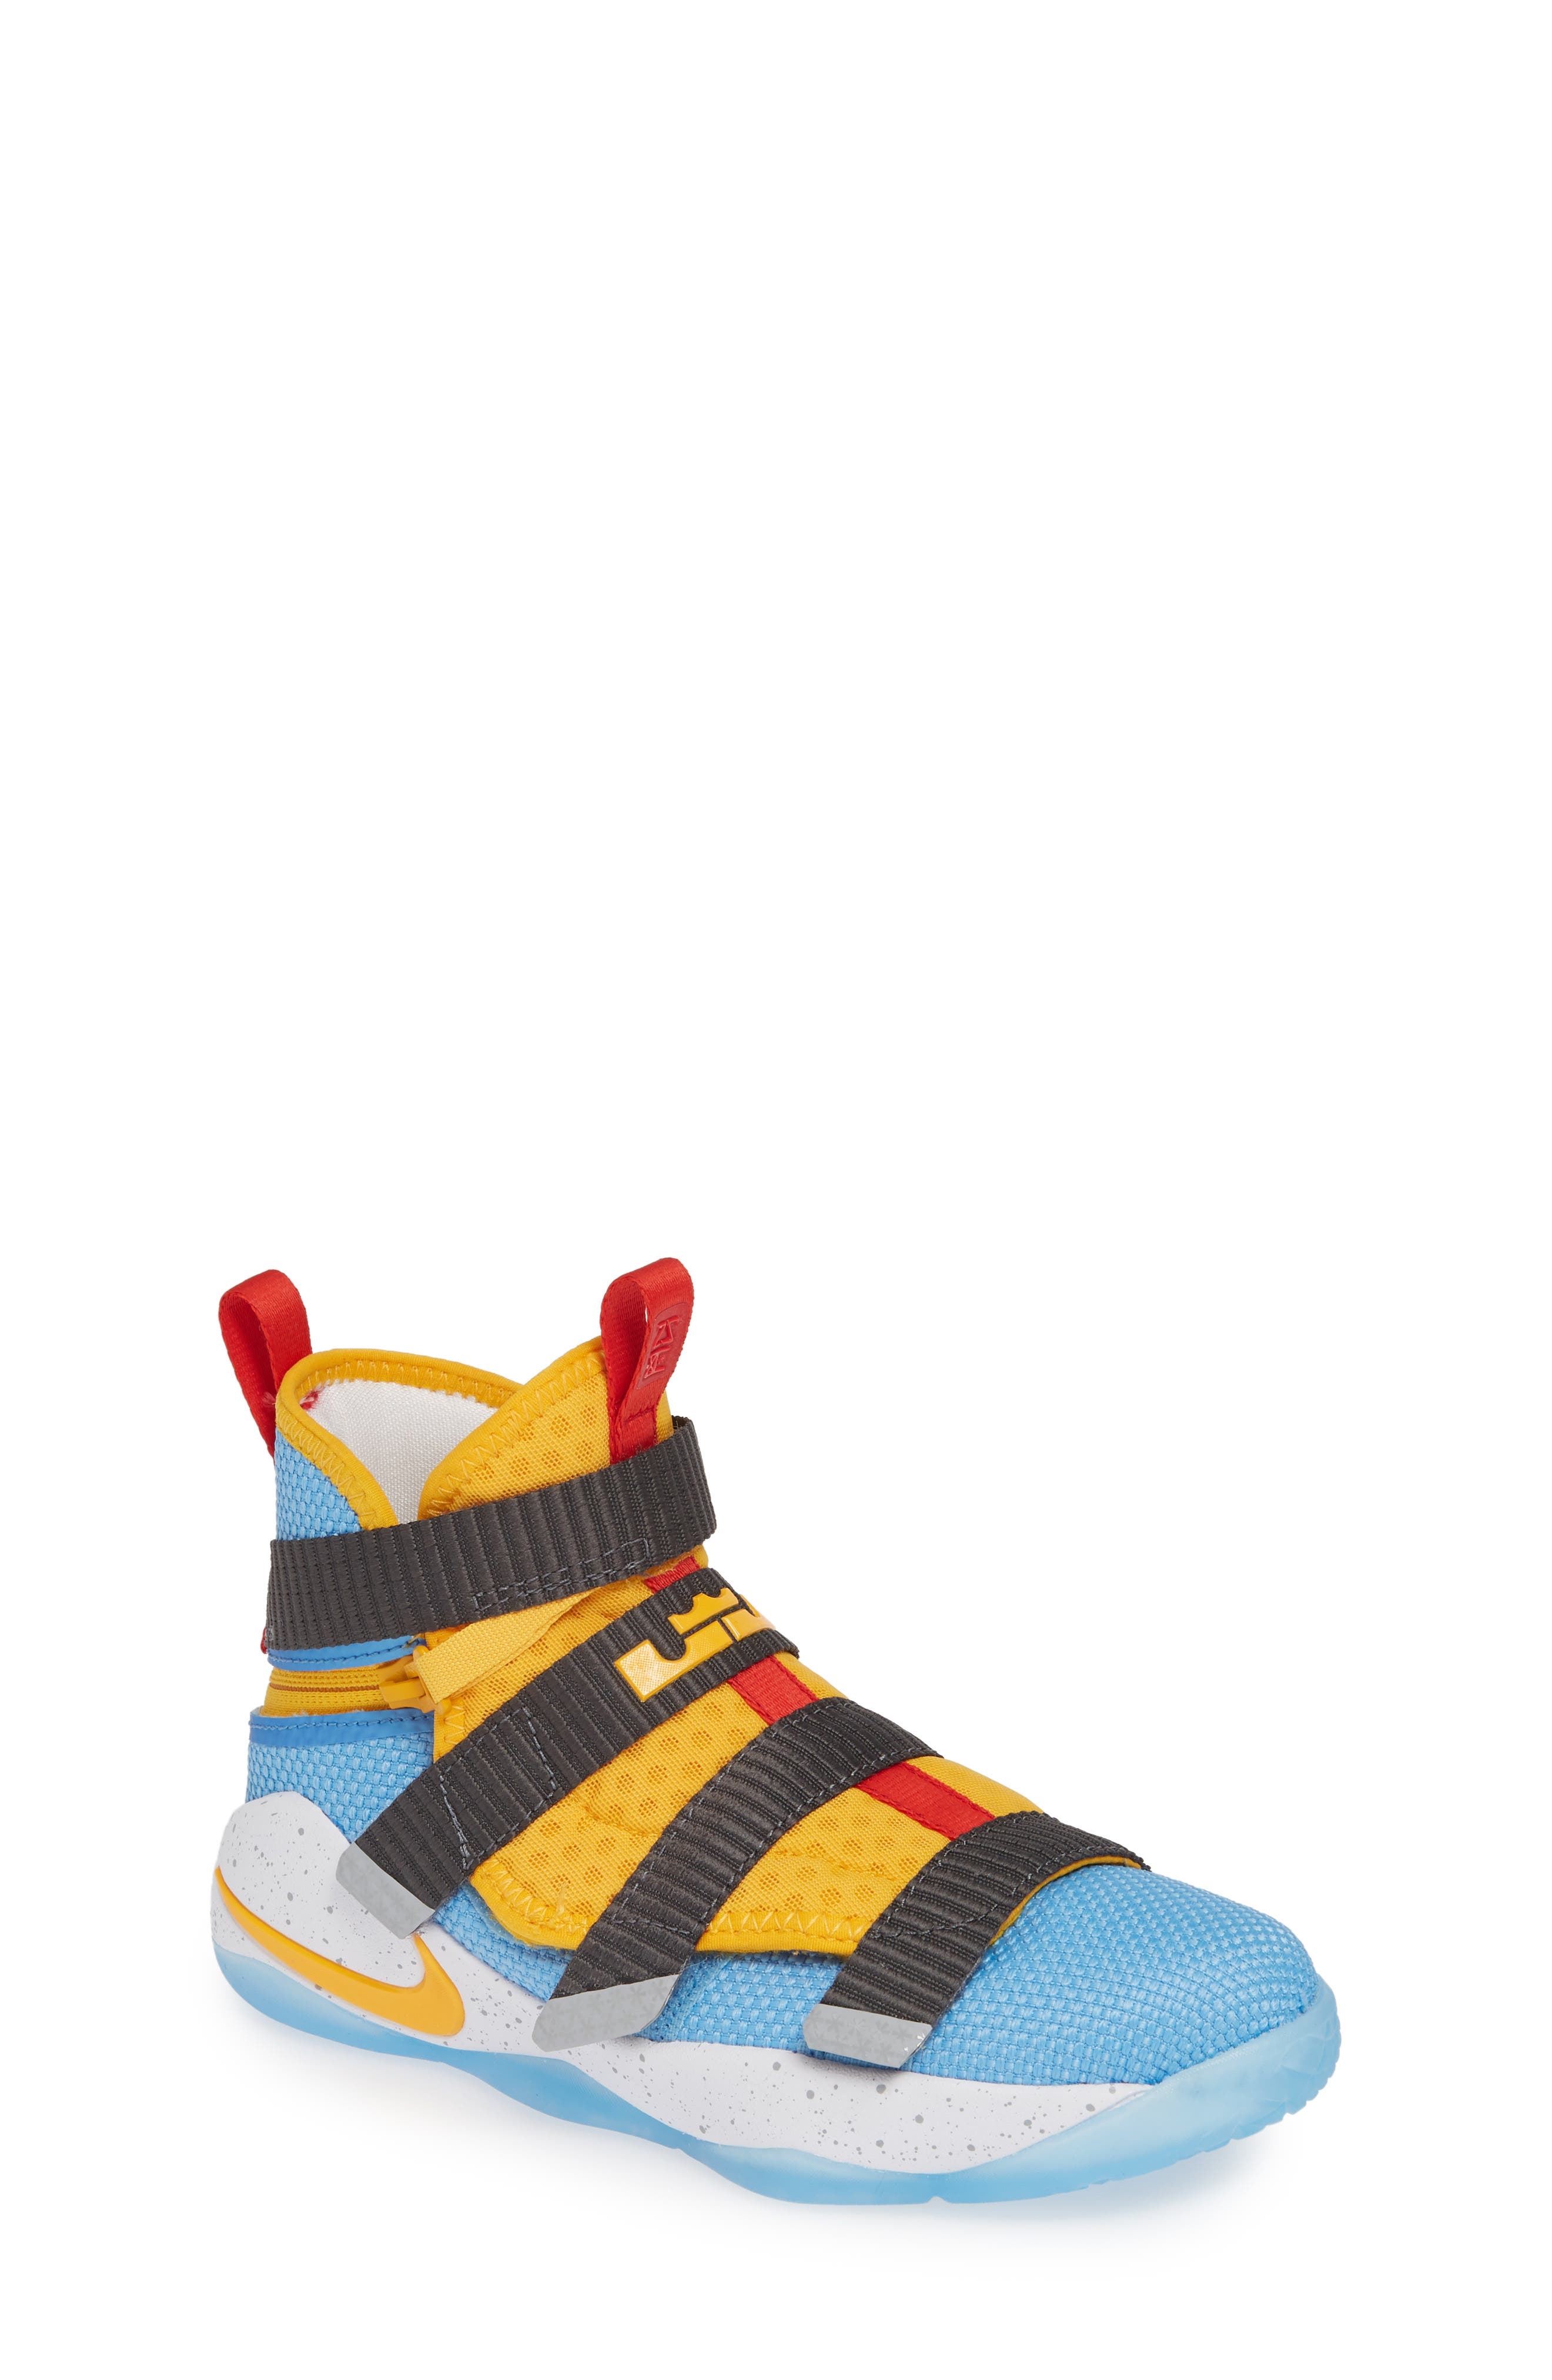 LeBron Soldier XI FlyEase High Top Sneaker, Main, color, UNIVERSITY GOLD/ WHITE-RED